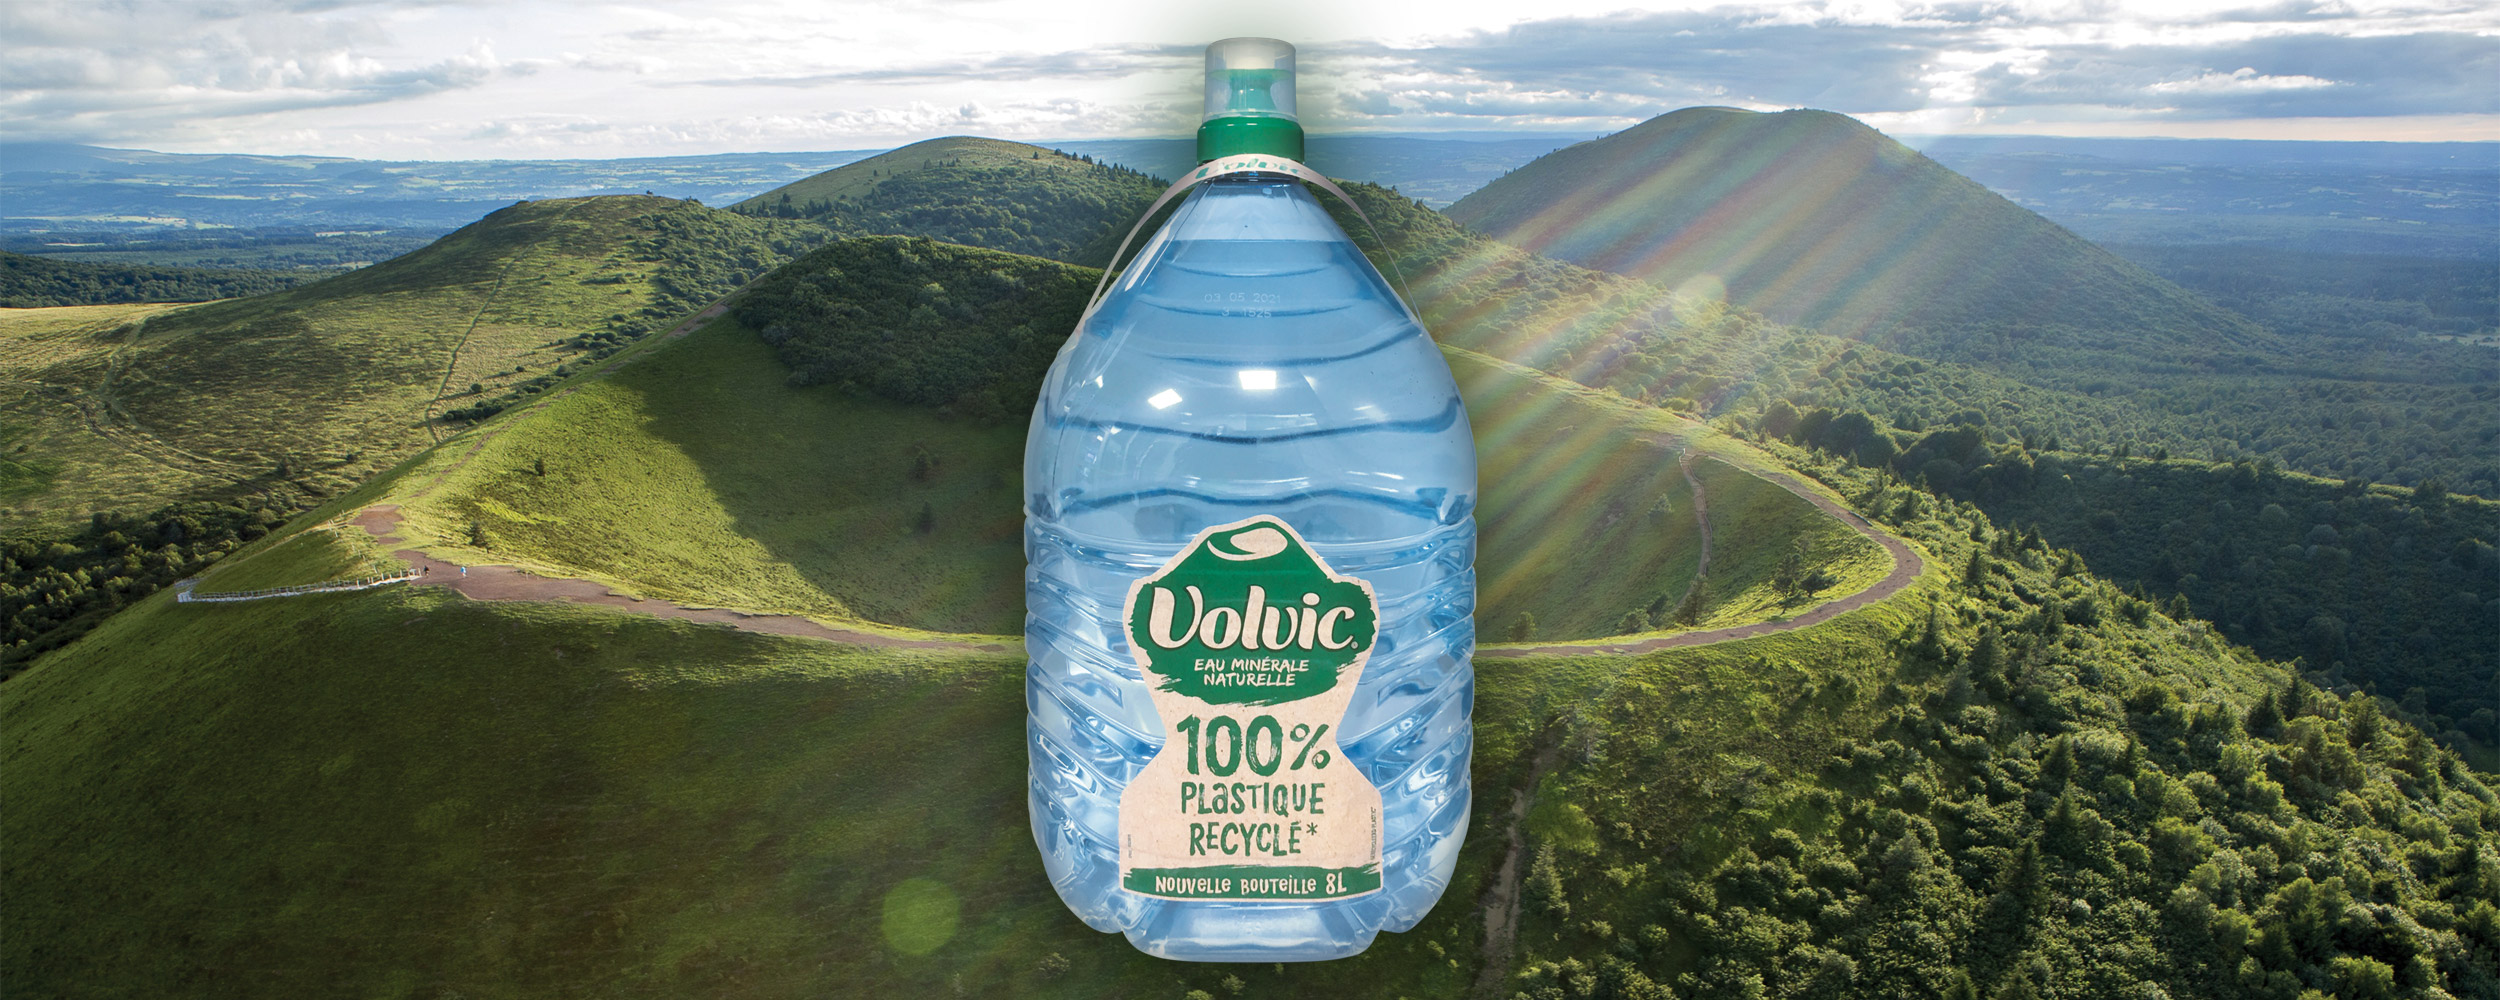 Circular economy in the packaging industry: the case of Societé des Eaux de Volvic